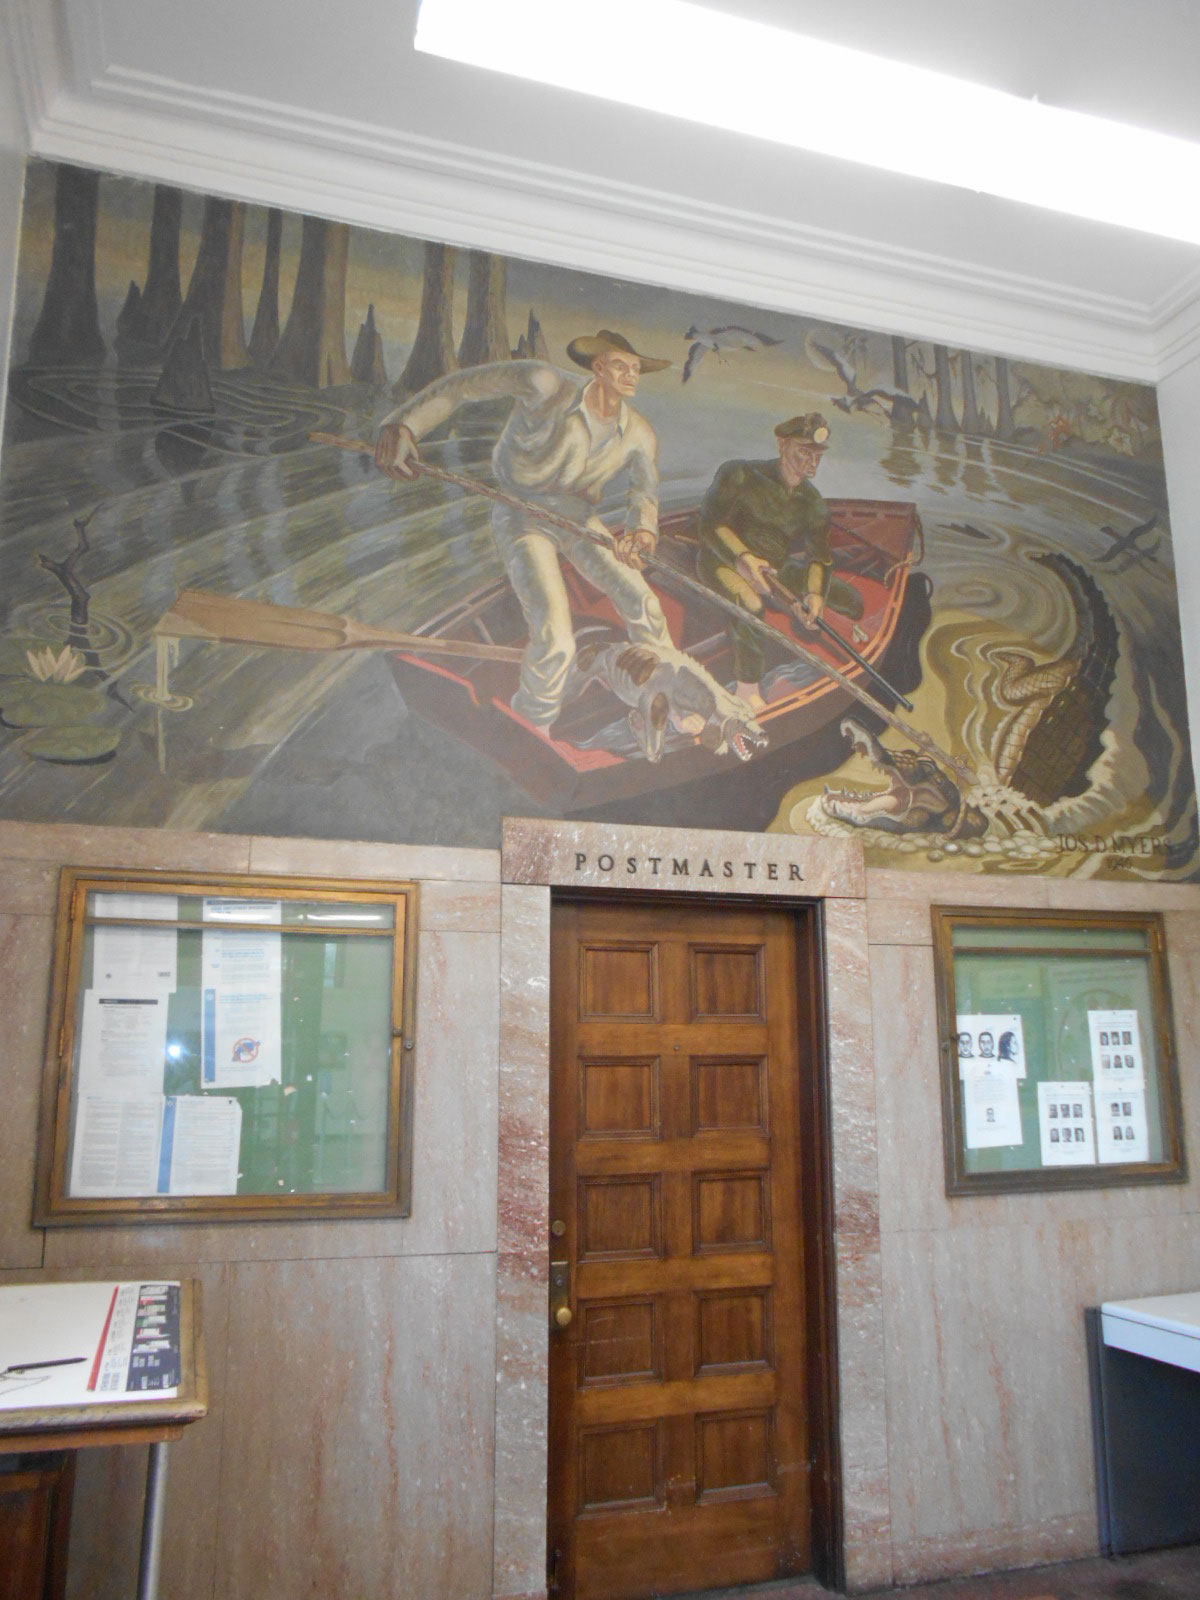 -Settler-Fighting-Alligator-from-Rowboat--mural-at-the-Post-Office